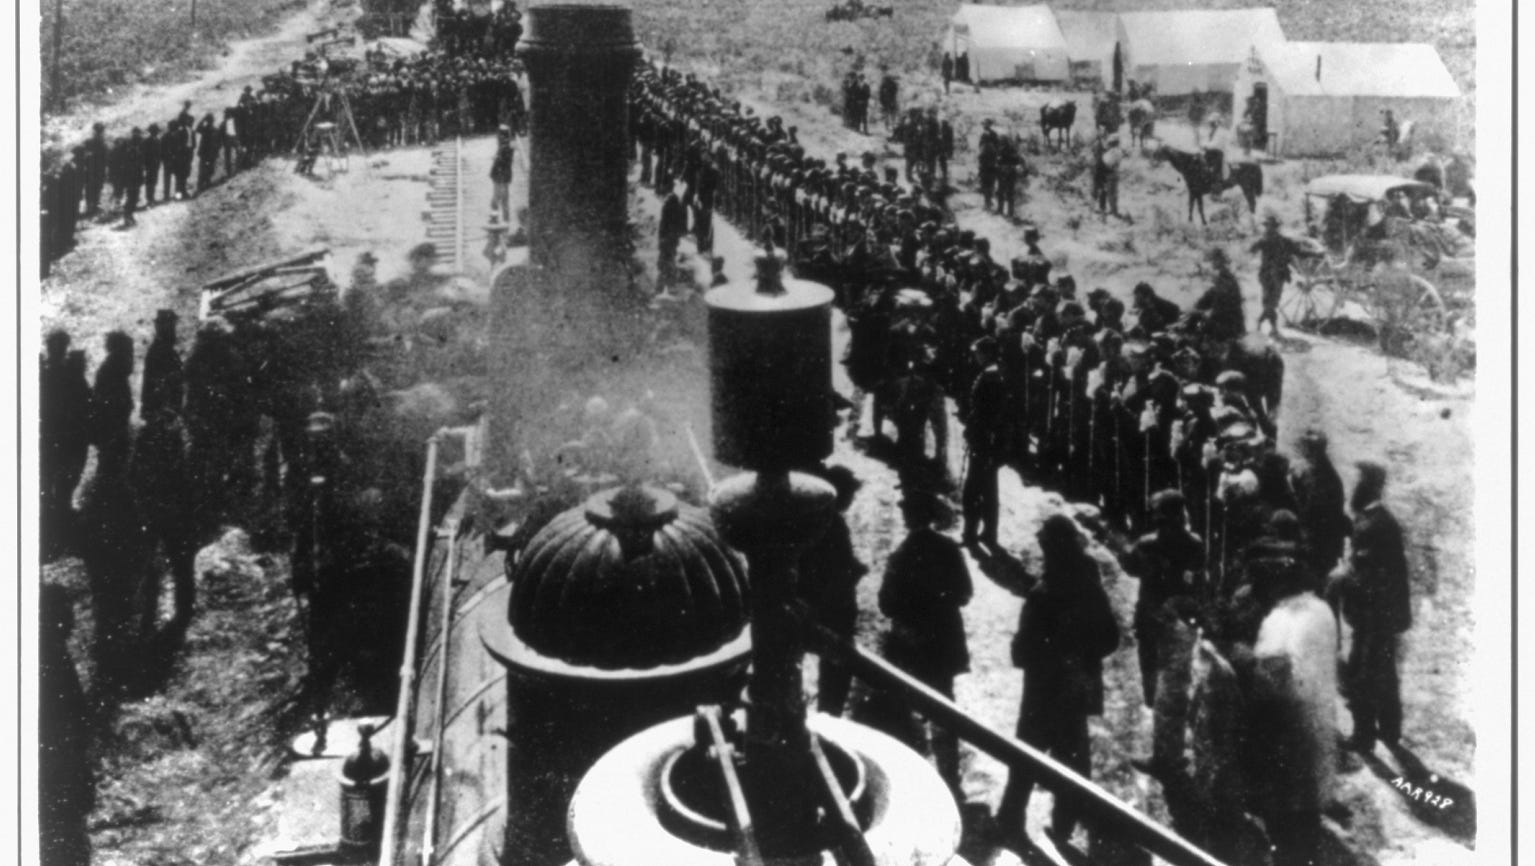 Today in History, May 10: Golden spike marked completion of transcontinental railroad